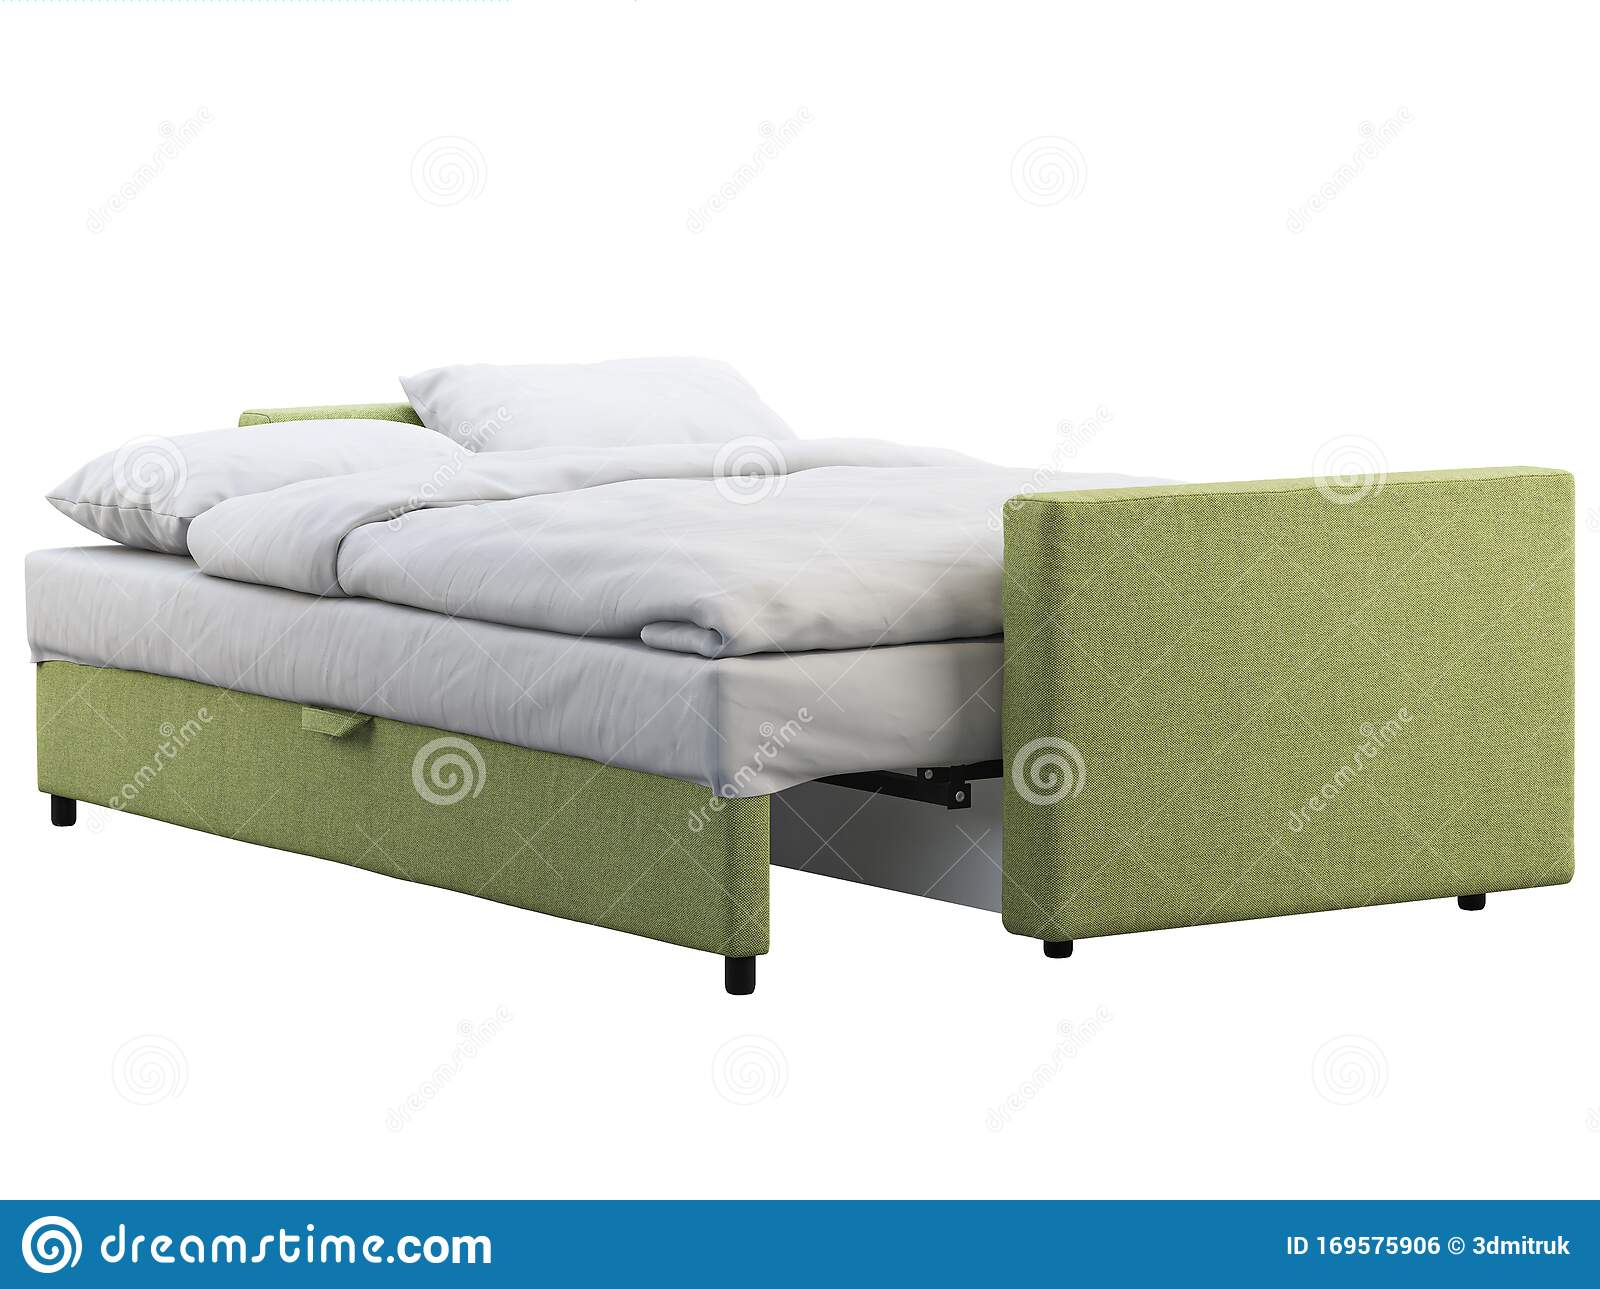 Modern Black Leather Sofa Bed With Bed Linen And Plaid 3d Render Stock Illustration Illustration Of Furniture Plaid 169575906